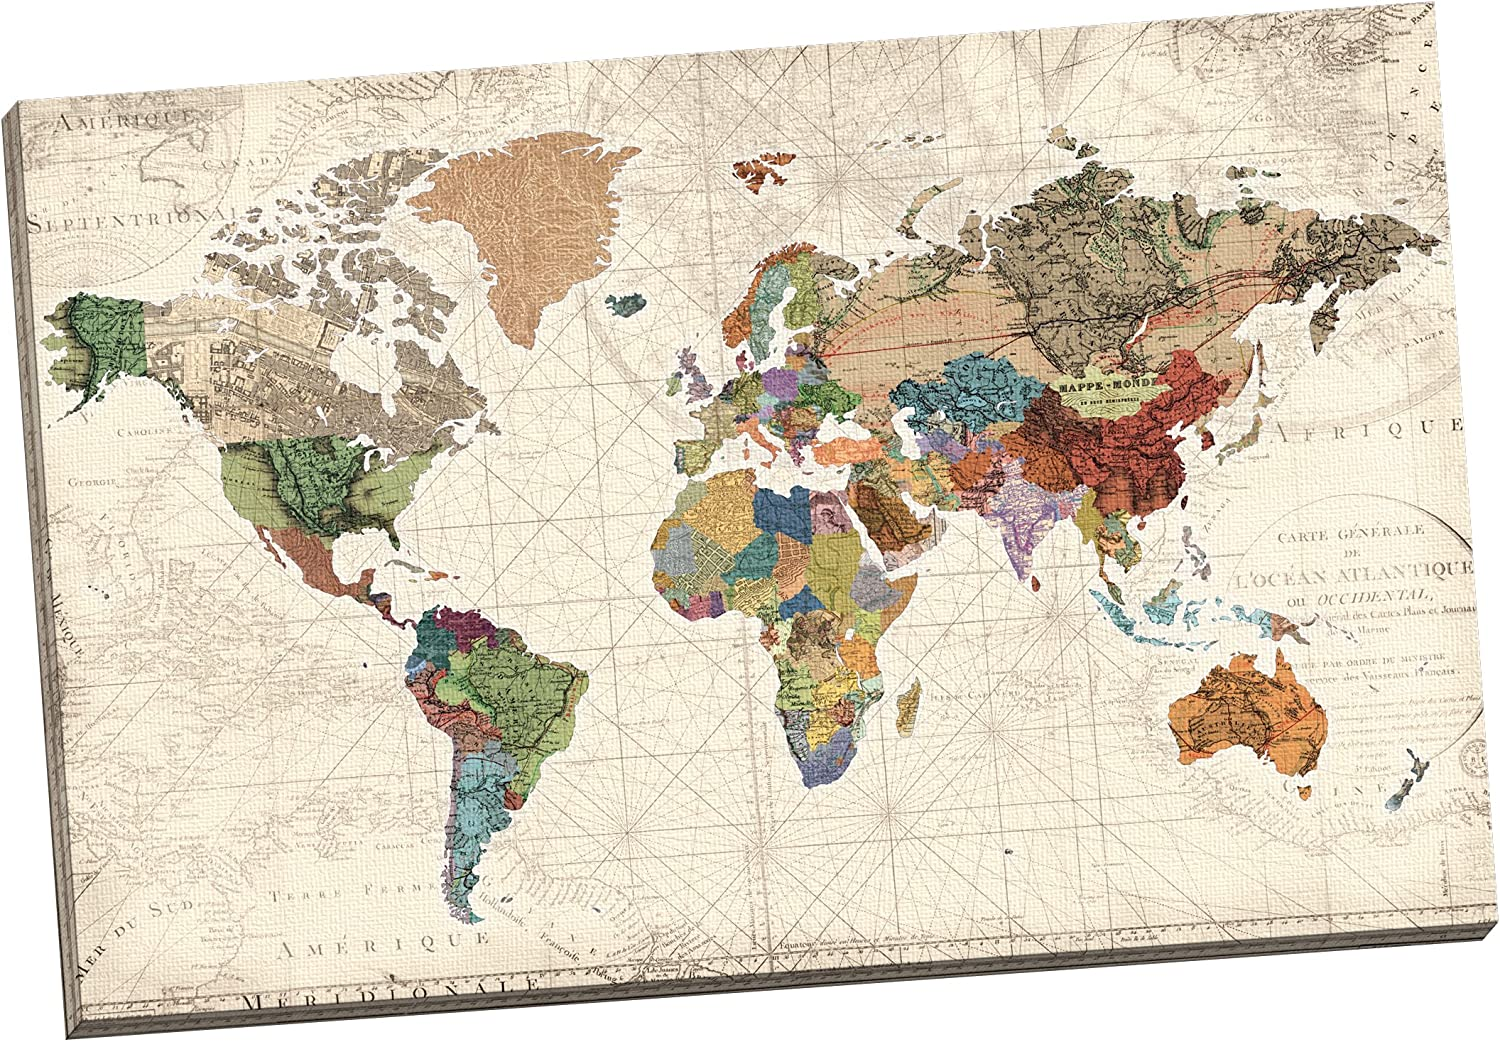 Portfolio Canvas Decor 'World Map of Maps' by Studio Voltaire Wrapped and Stretched Canvas Wall Art, 24 x 36